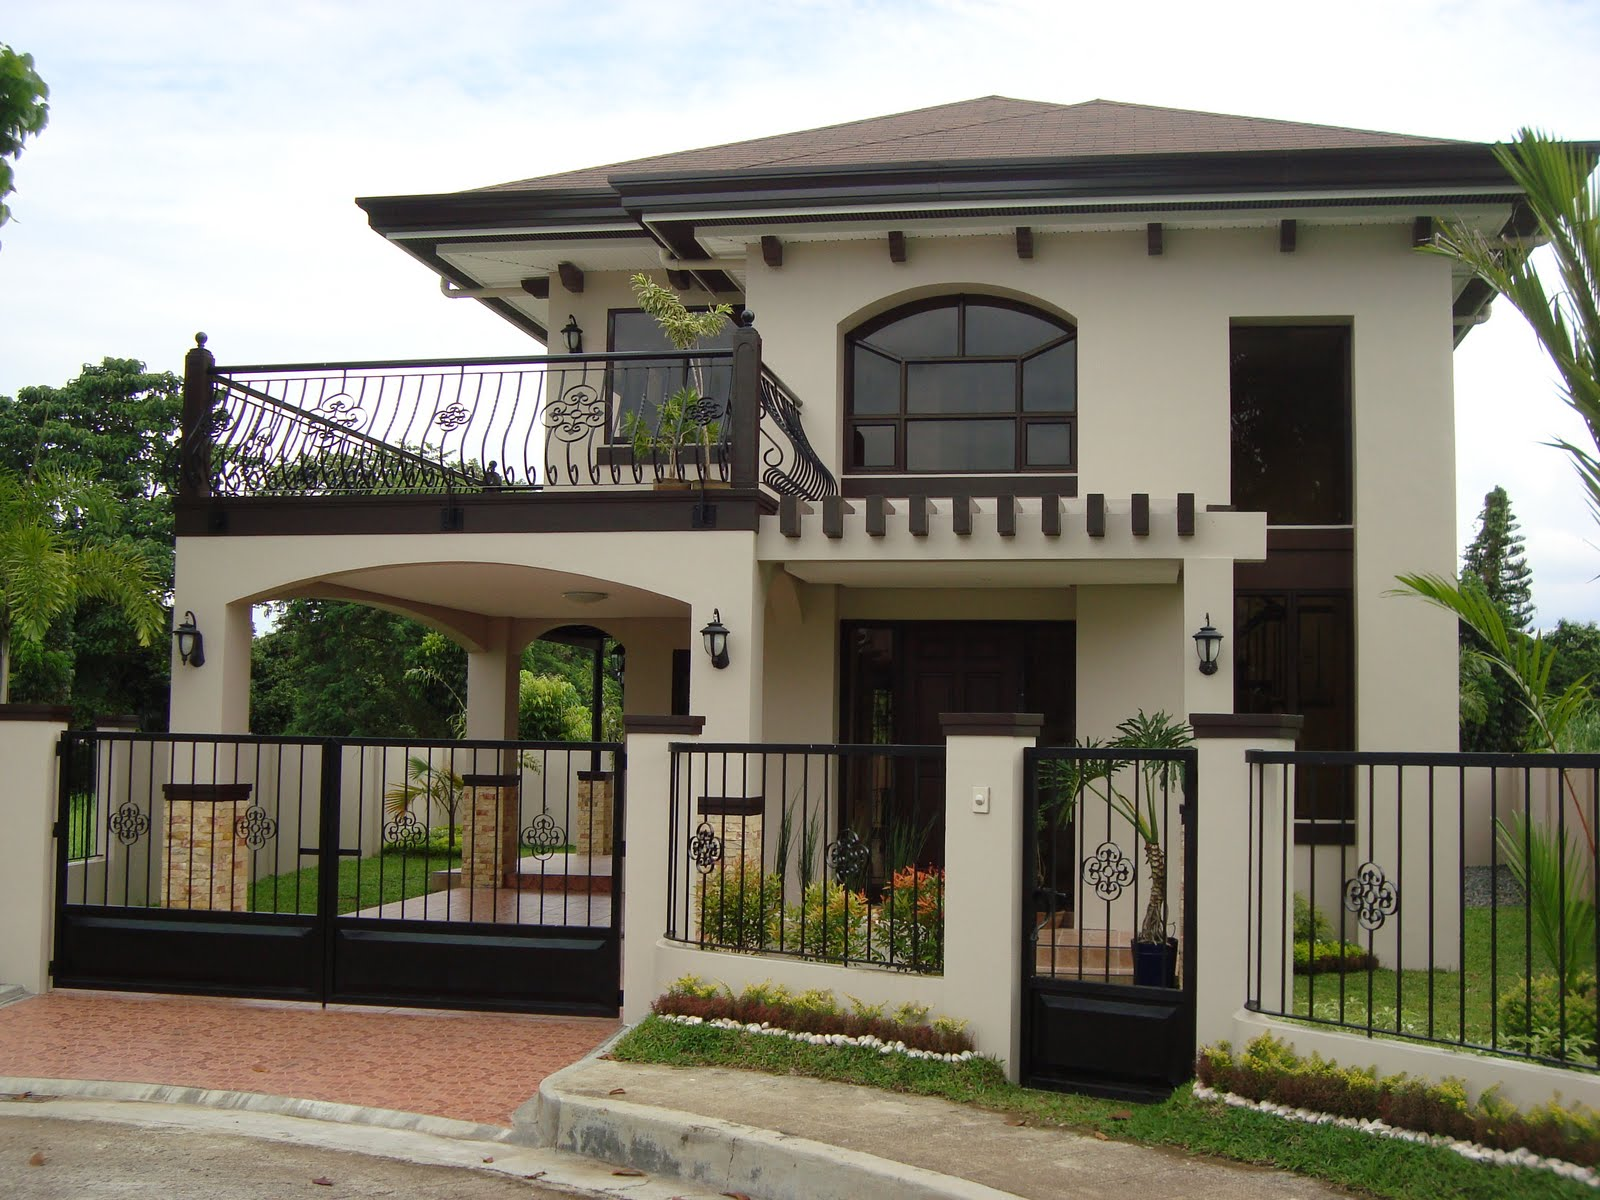 2 Storey House With Balcony Design Images